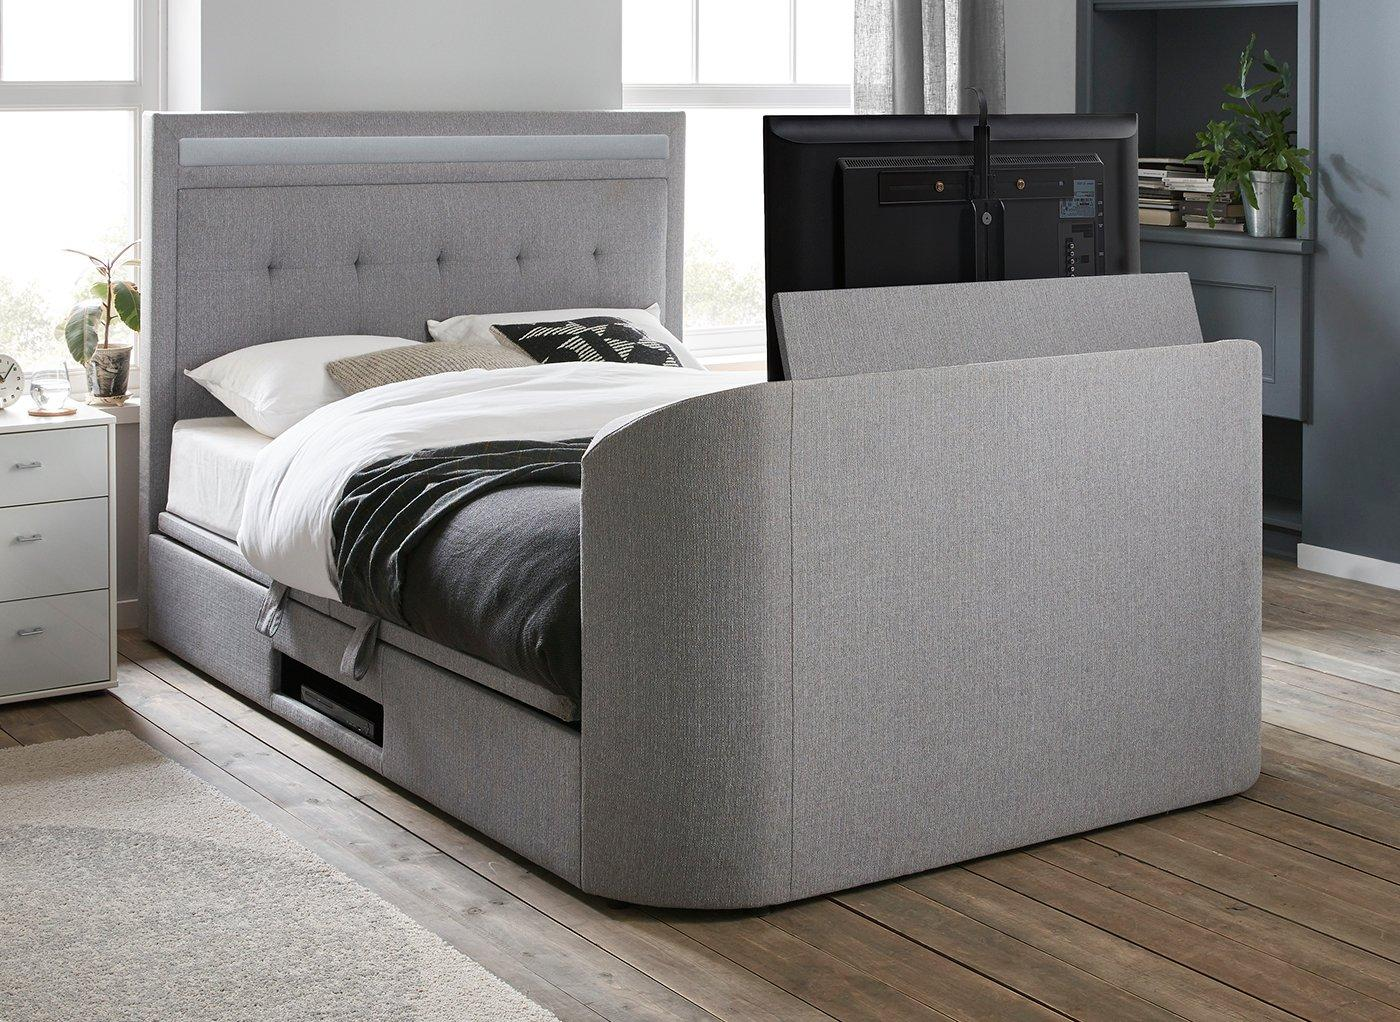 Tv Bed Stylish Tv Beds With Led Flat Screens In All Sizes Dreams